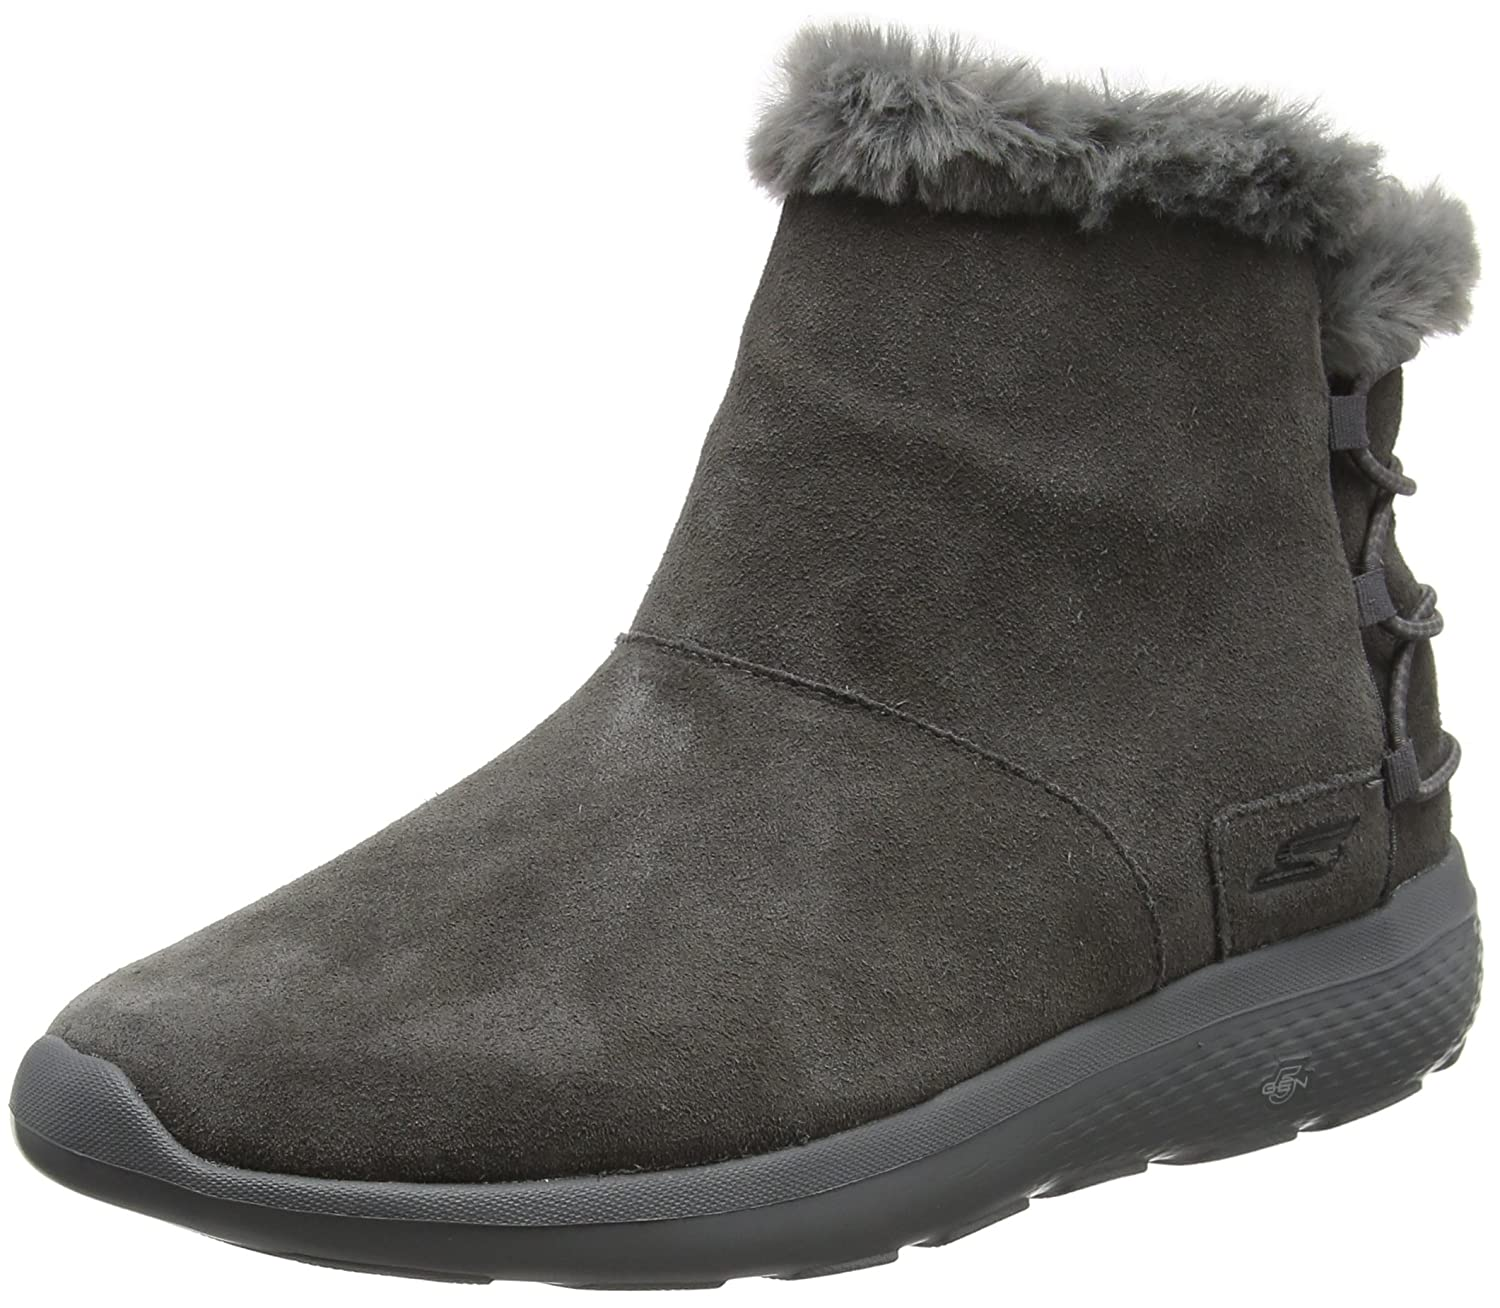 Skechers Damen on-The-Go City 2 Stiefel  39 EU|Grau (Charcoal)